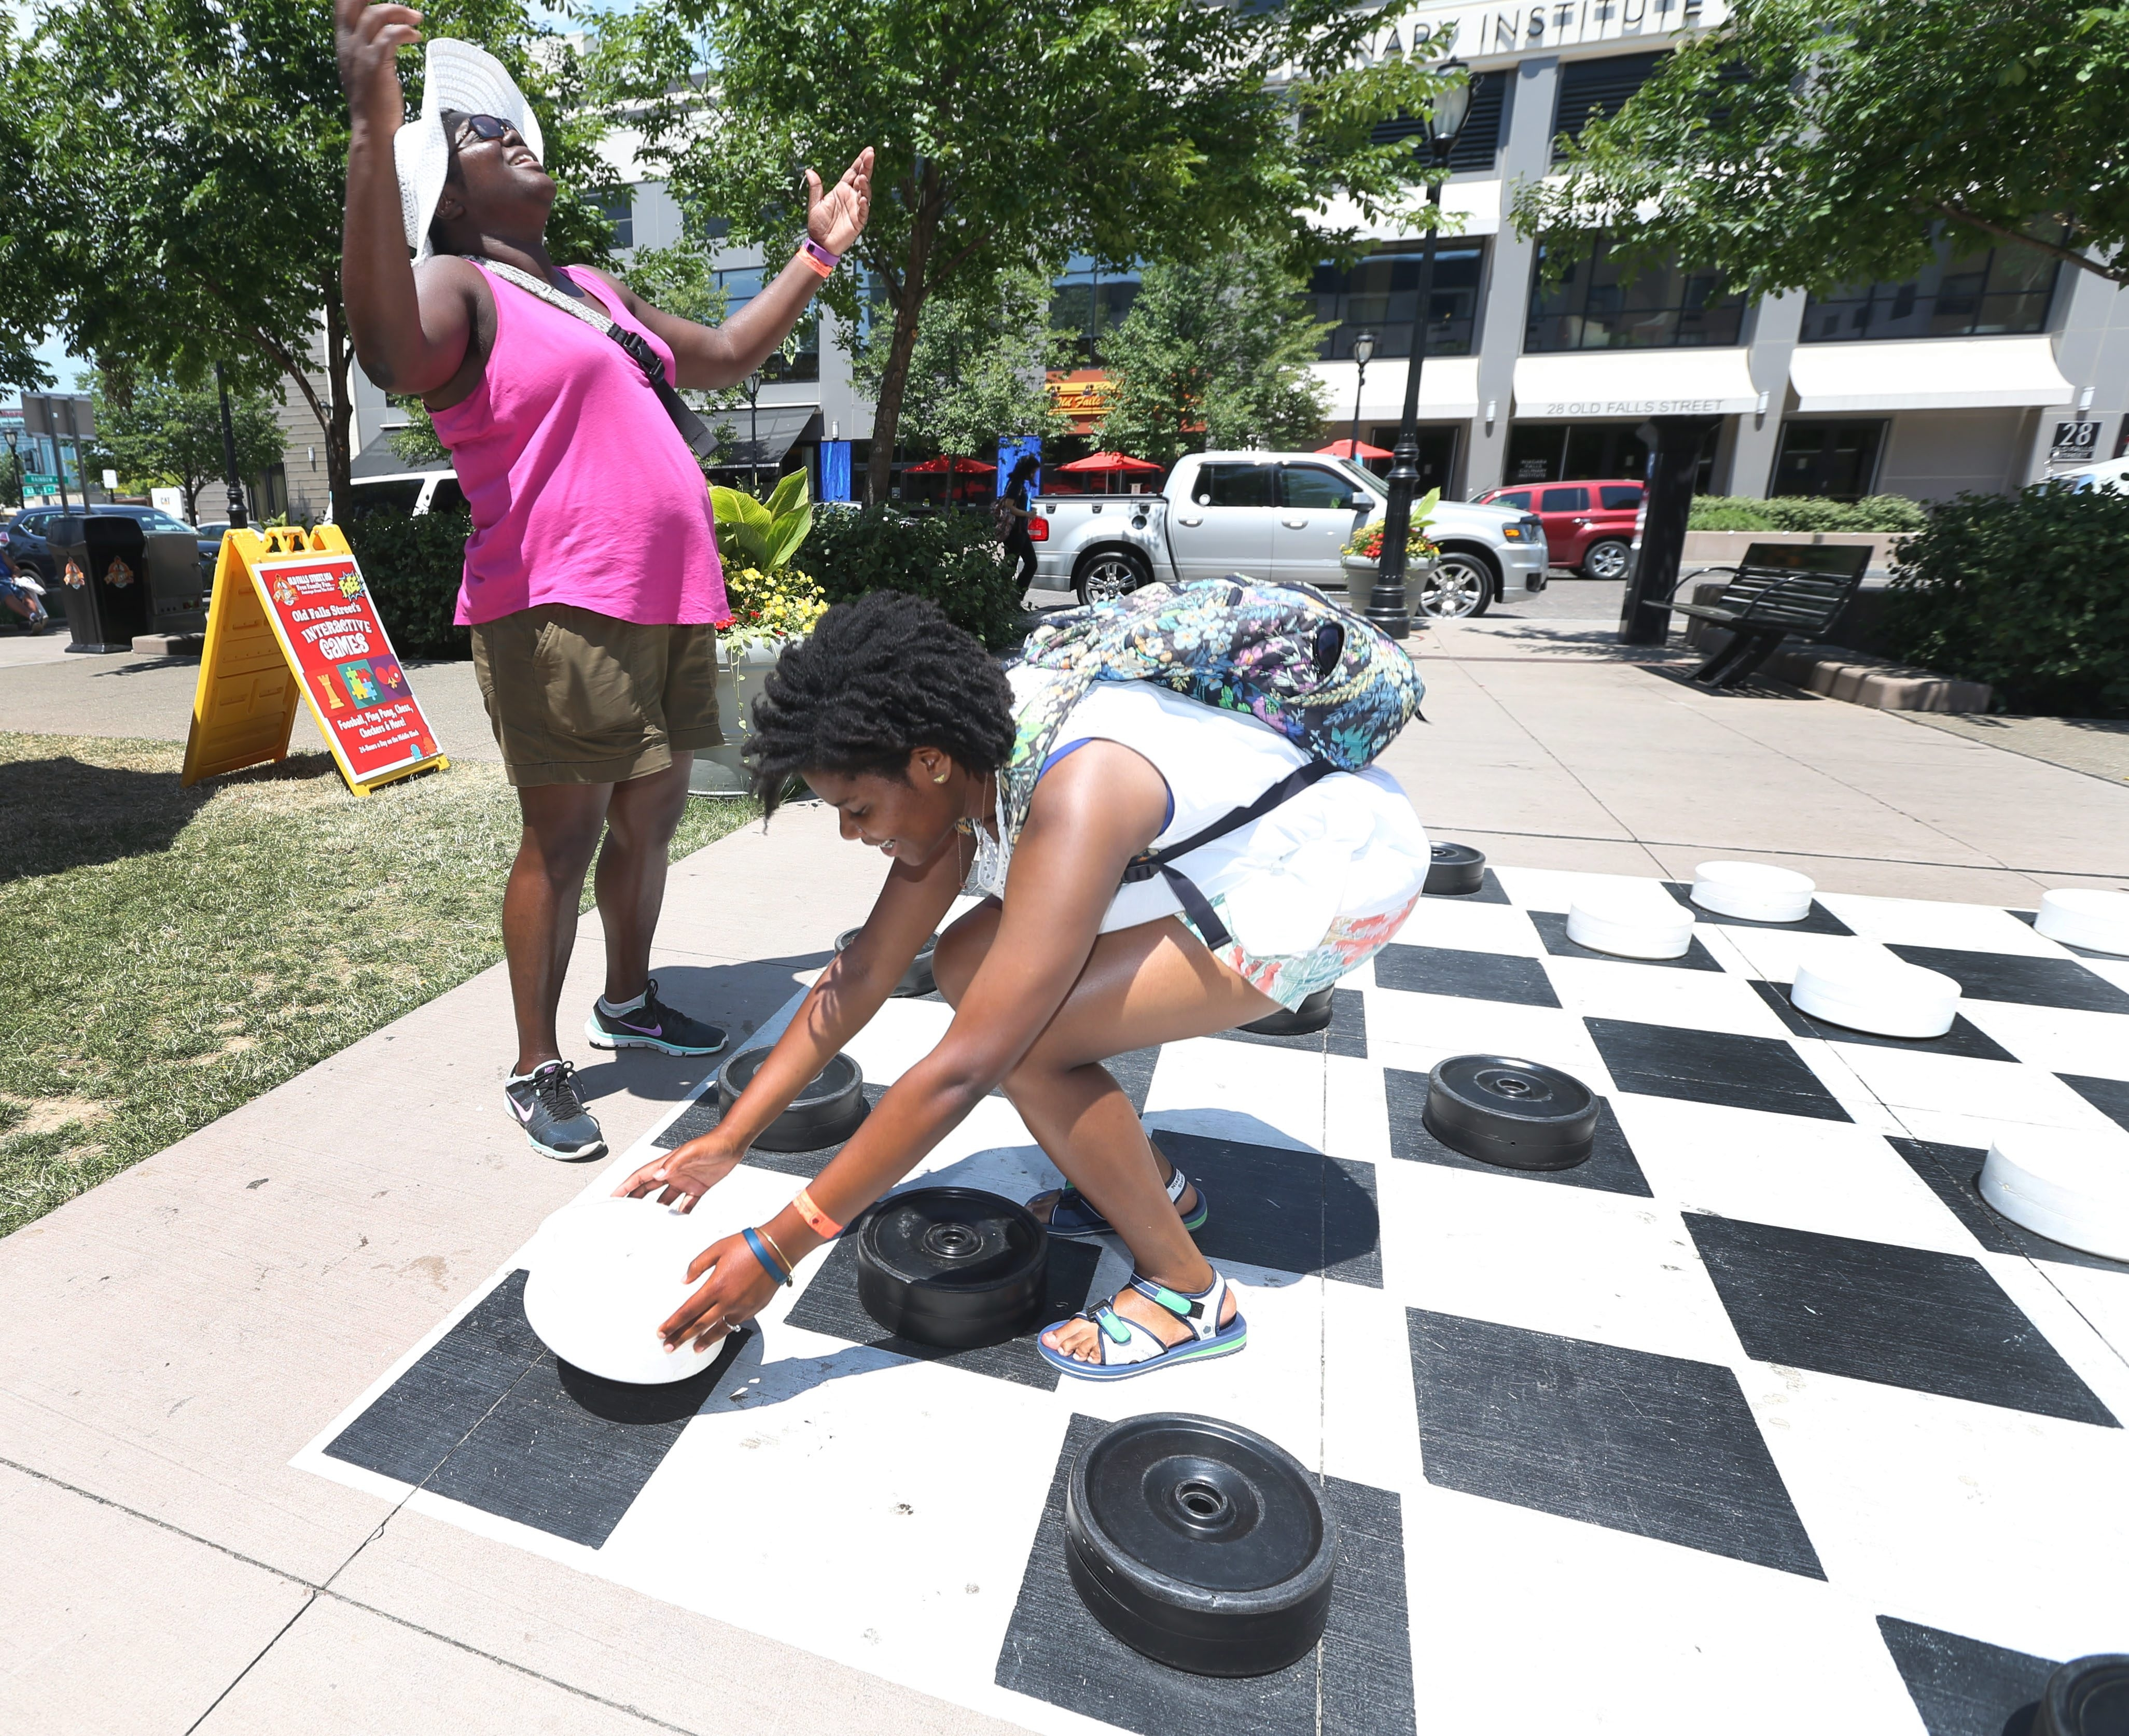 Chelesa Presley, left, of Batesville Miss., and her daughter Ciera, 16, play a giant game of checkers, Tuesday on Old Falls Street in Niagara Falls. (Sharon Cantillon/Buffalo News)